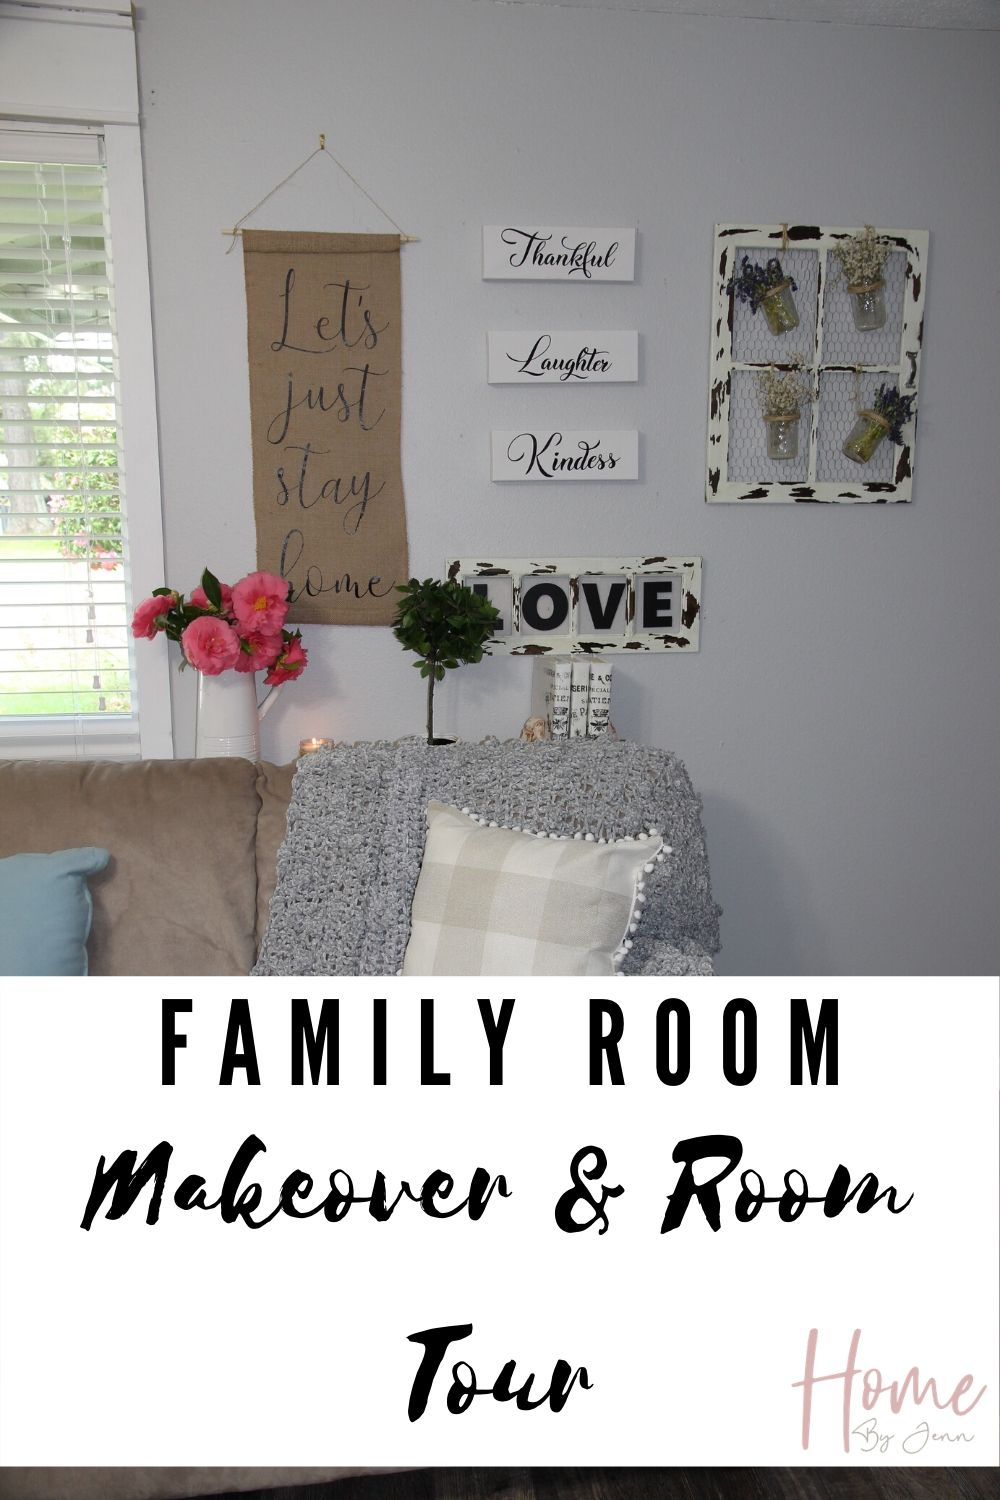 family room makeover after via @homebyjenn